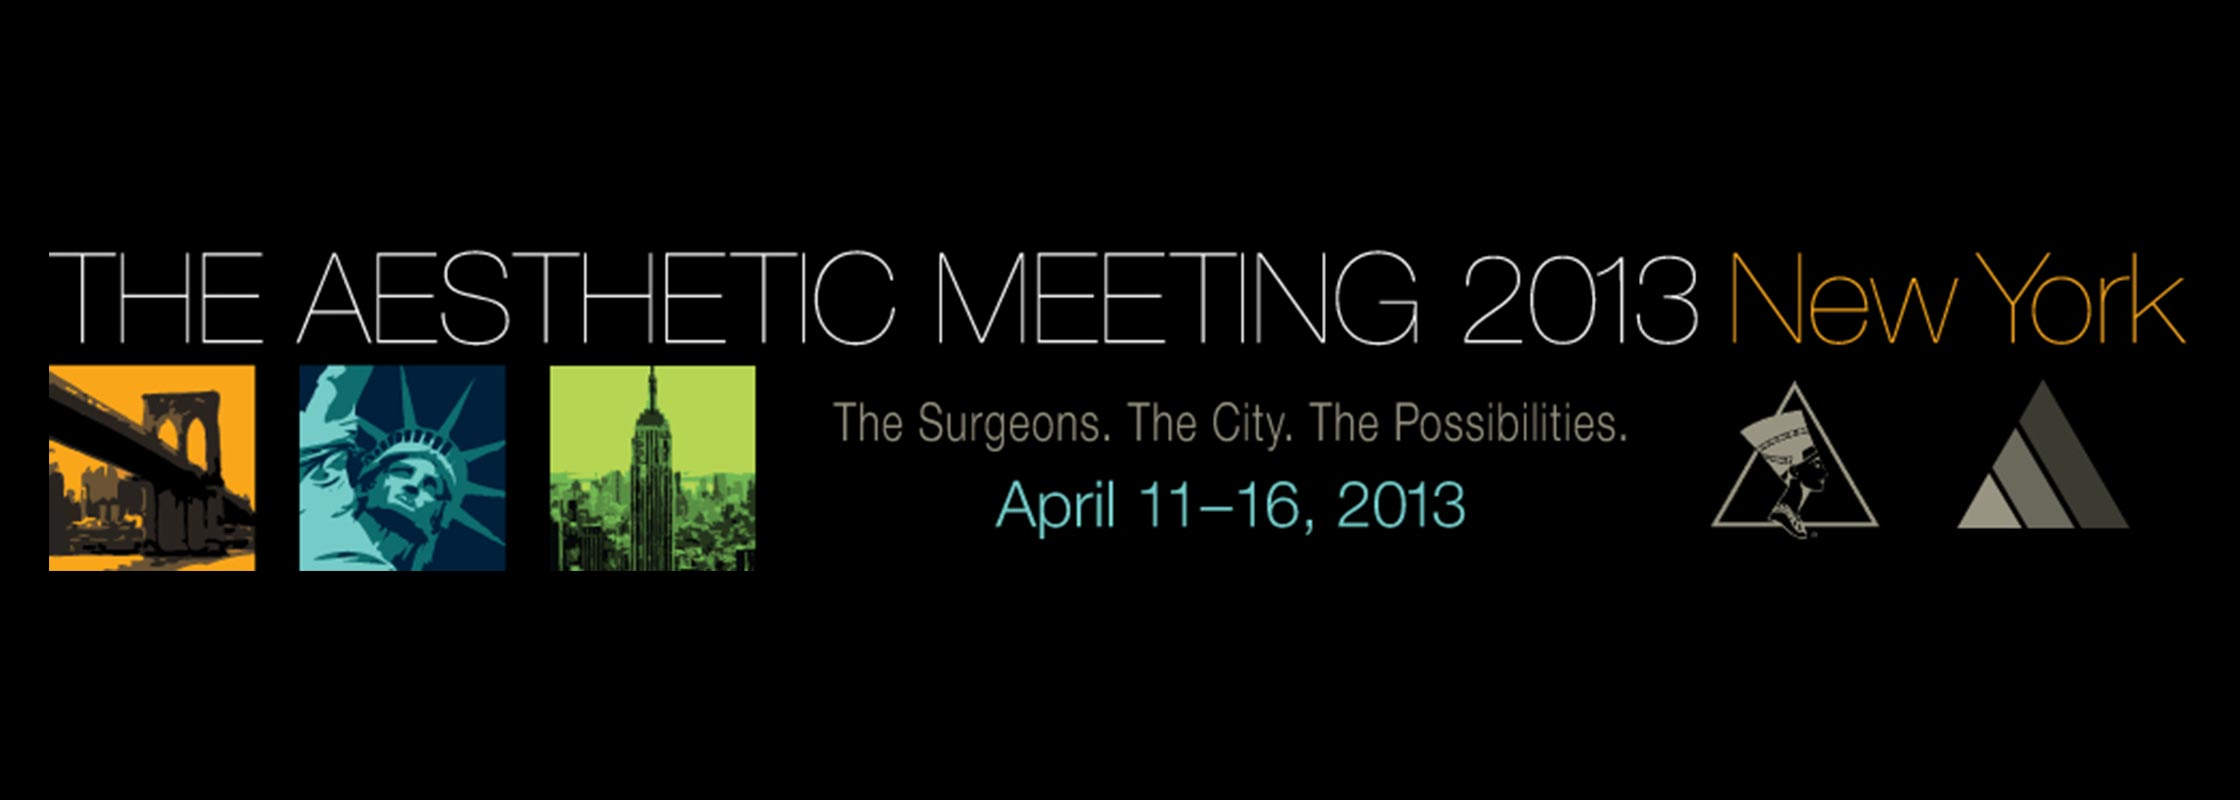 ASAPS The Aesthetic Meeting 2013